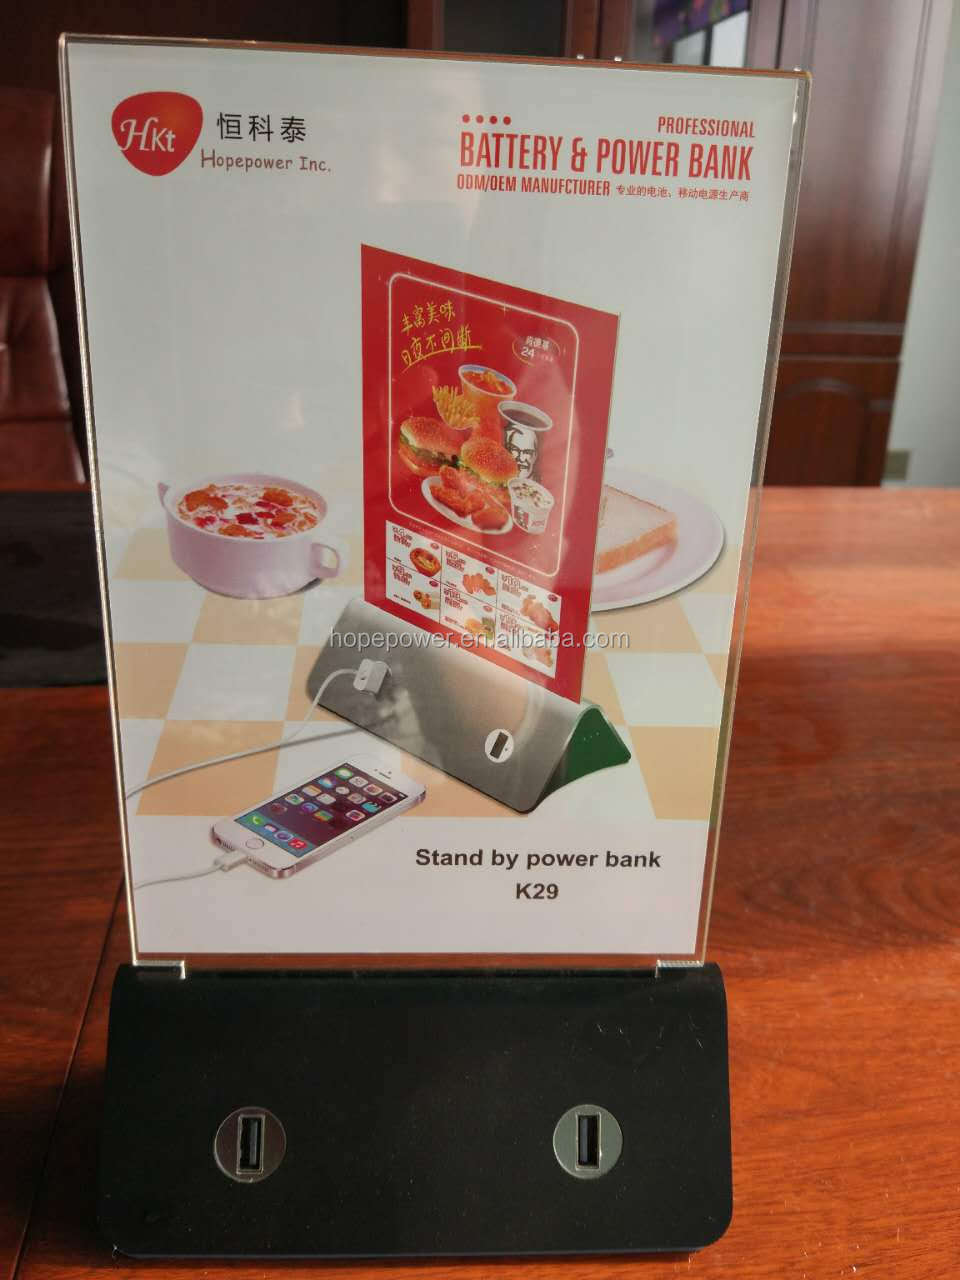 Shenzhen Manufacturer Restaurant Power Bank 10000mAh, Table Menu Holder Power Bank Restaurant For Hotel Bar Coffee